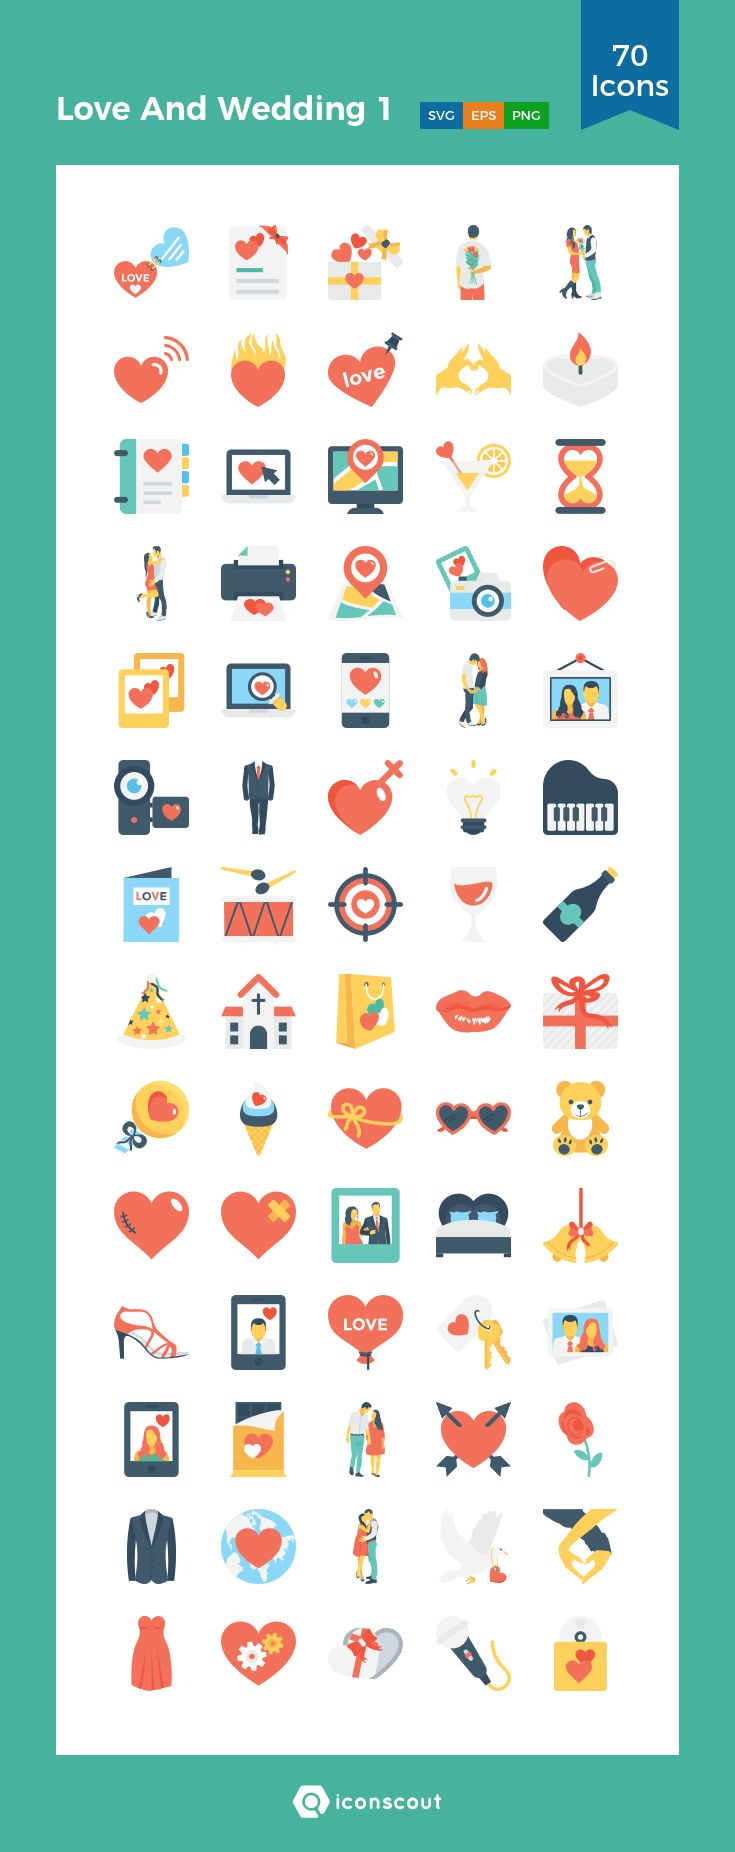 Love And Wedding 1  Icon Pack - 70 Flat Icons